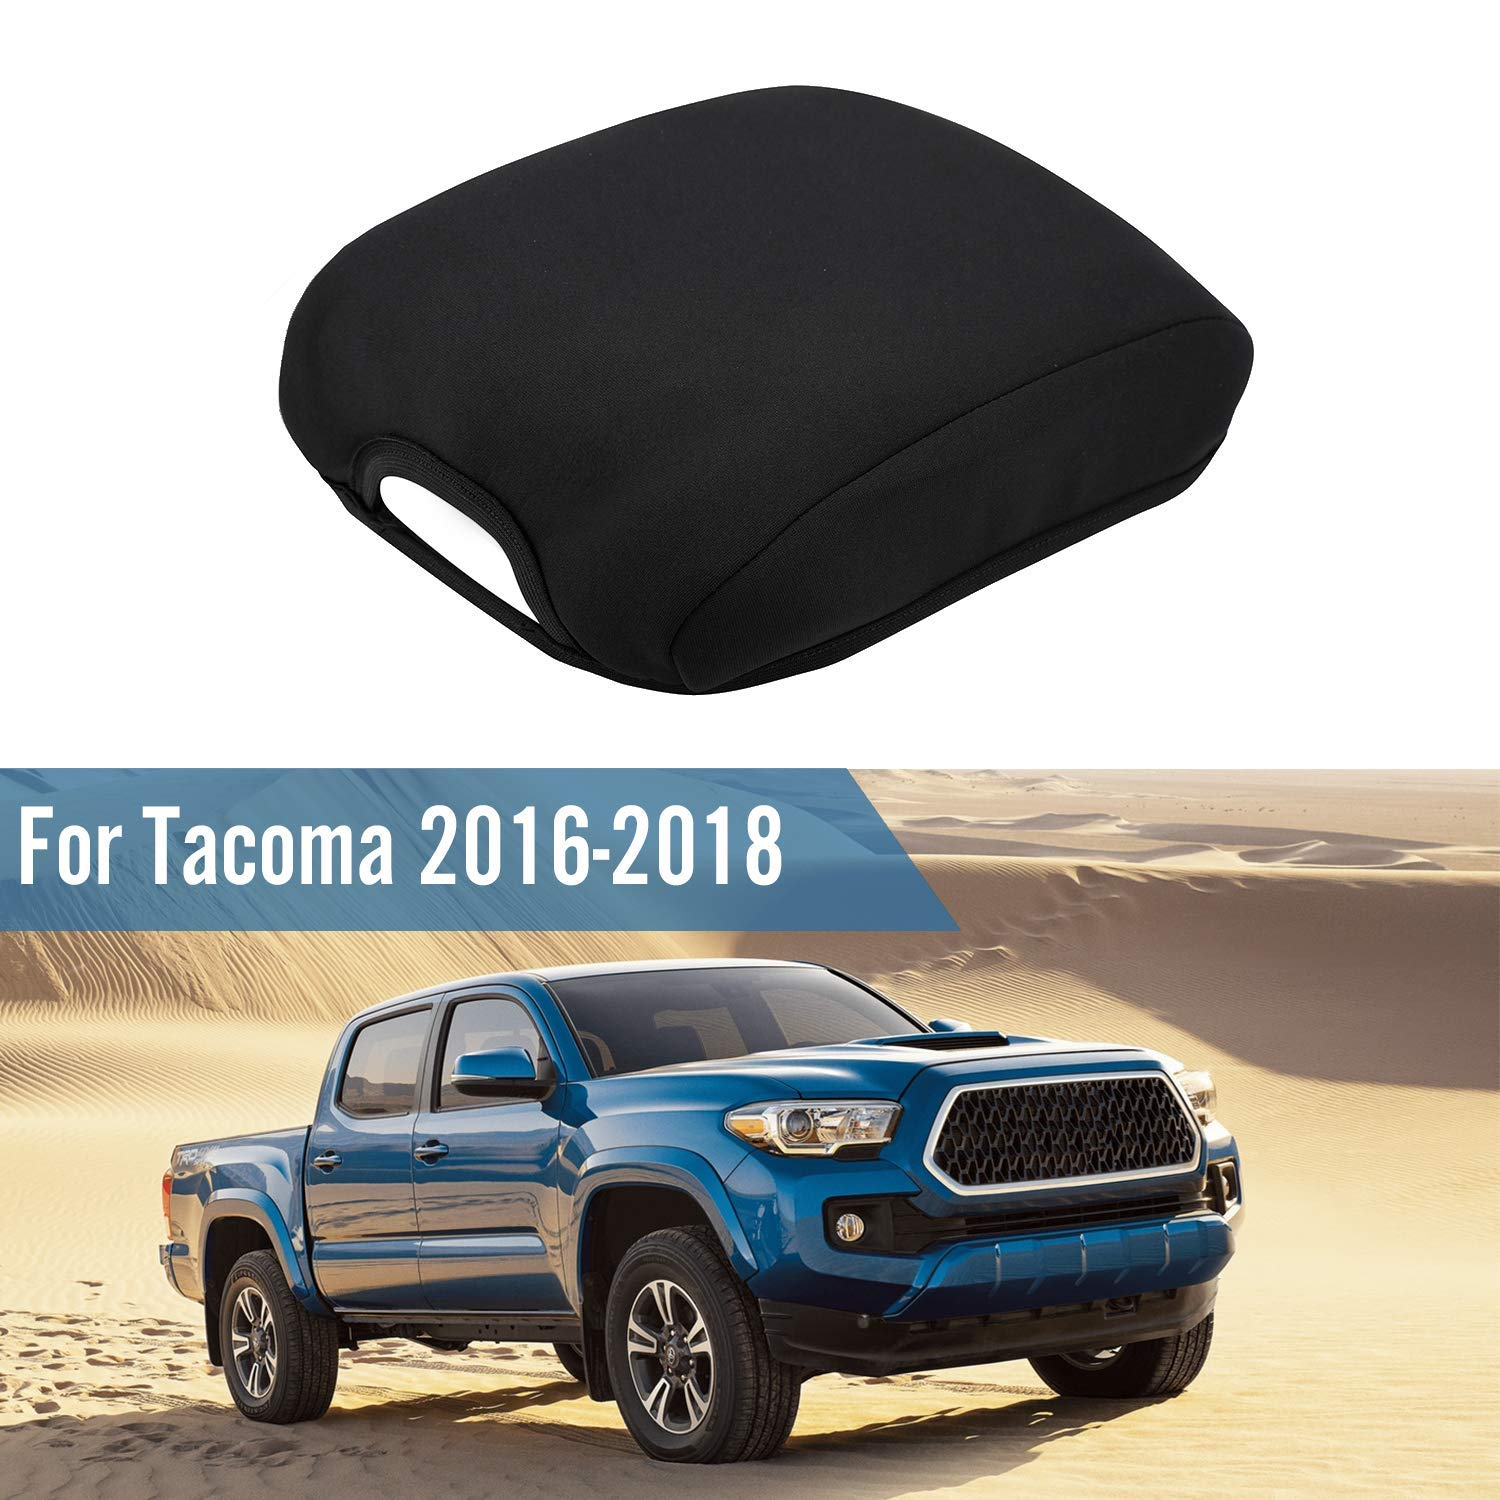 Seven Sparta Center Console Armrest Cover for Toyota Tacoma 2016-2018, Waterproof Neoprene Center Console Cover, Armrest Cover by Seven Sparta